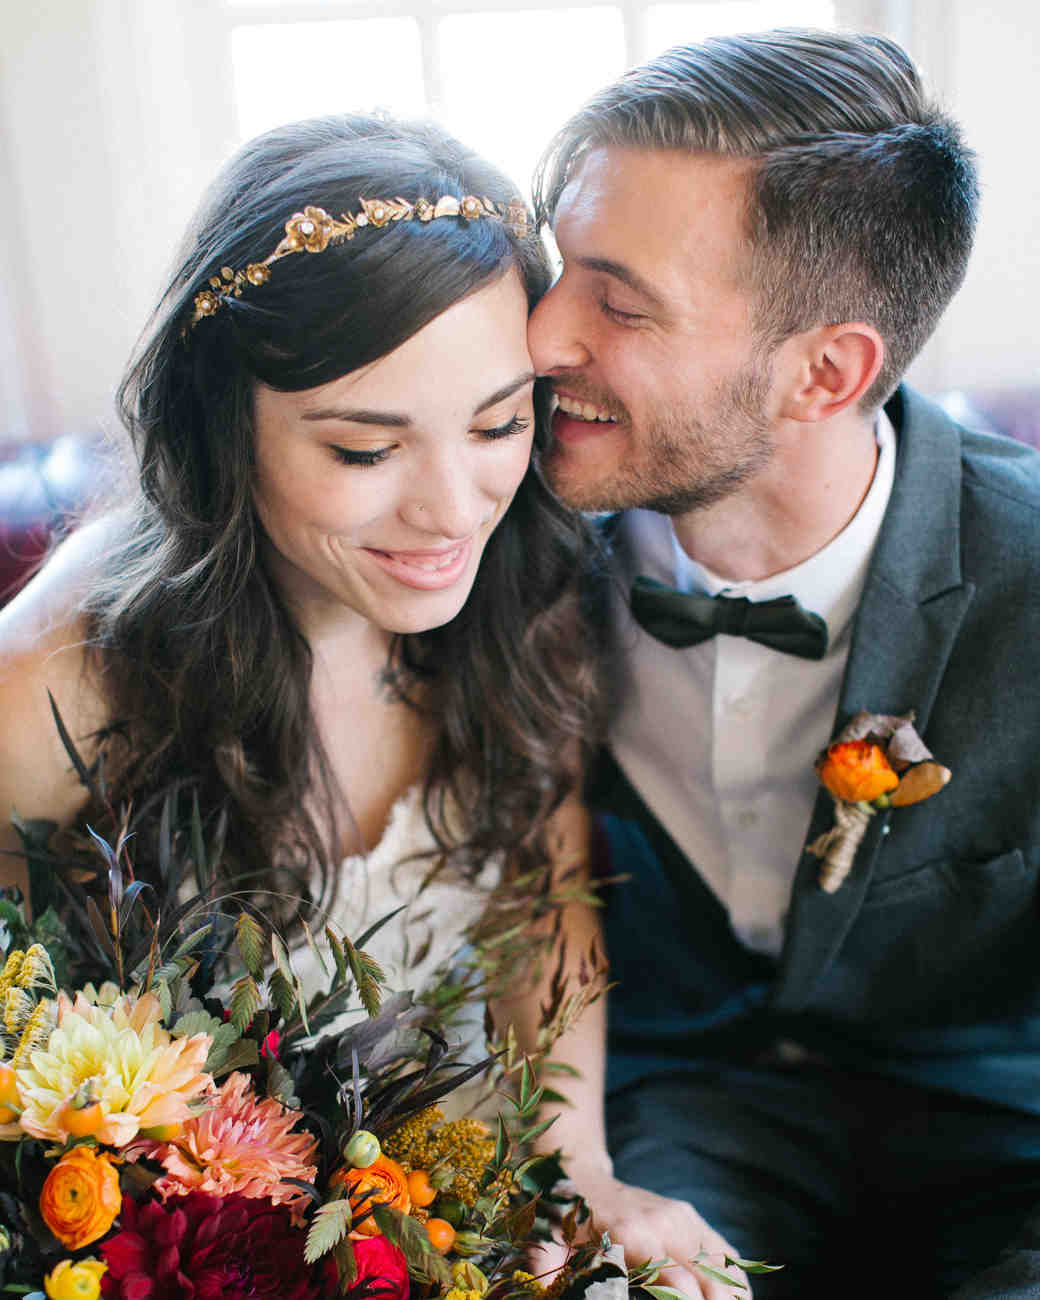 marguerita-aaron-wedding-couple-249-s111848-0214.jpg